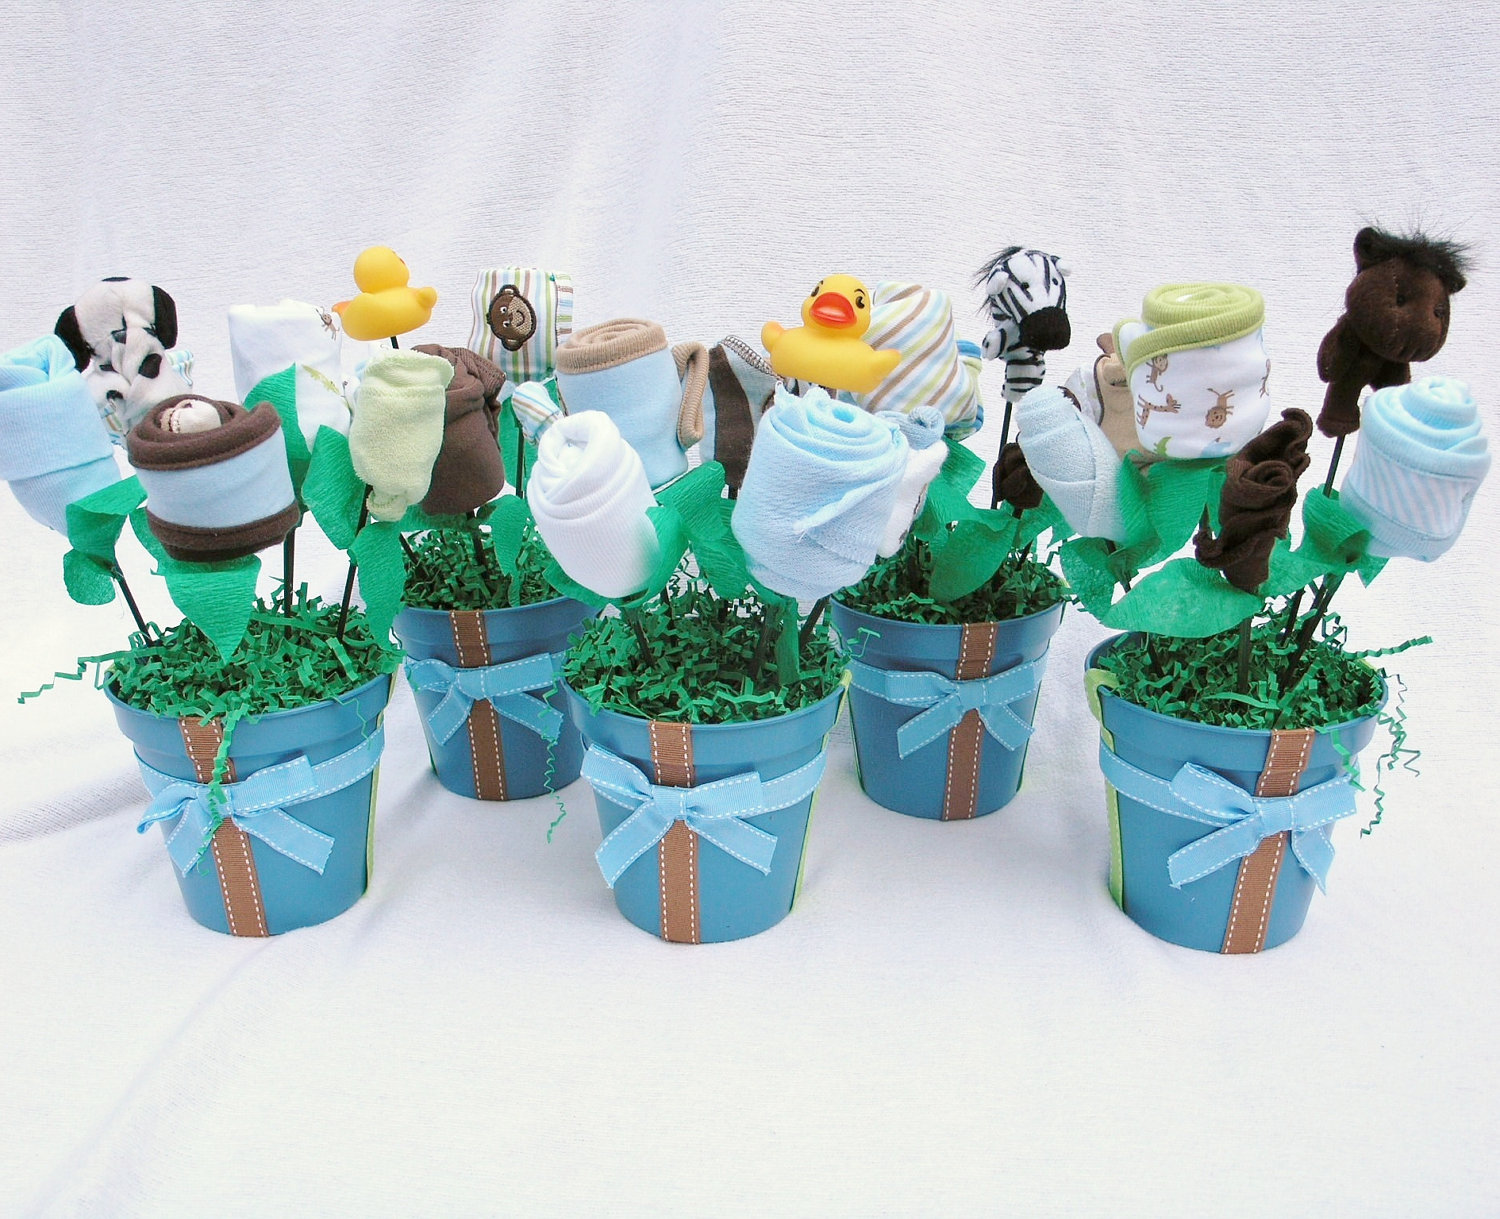 Baby Boy Shower Decorations Part - 45: Baby Boy Shower Centerpieces For Tables With Sock Or Baby Clothes Plus Blue  Pot